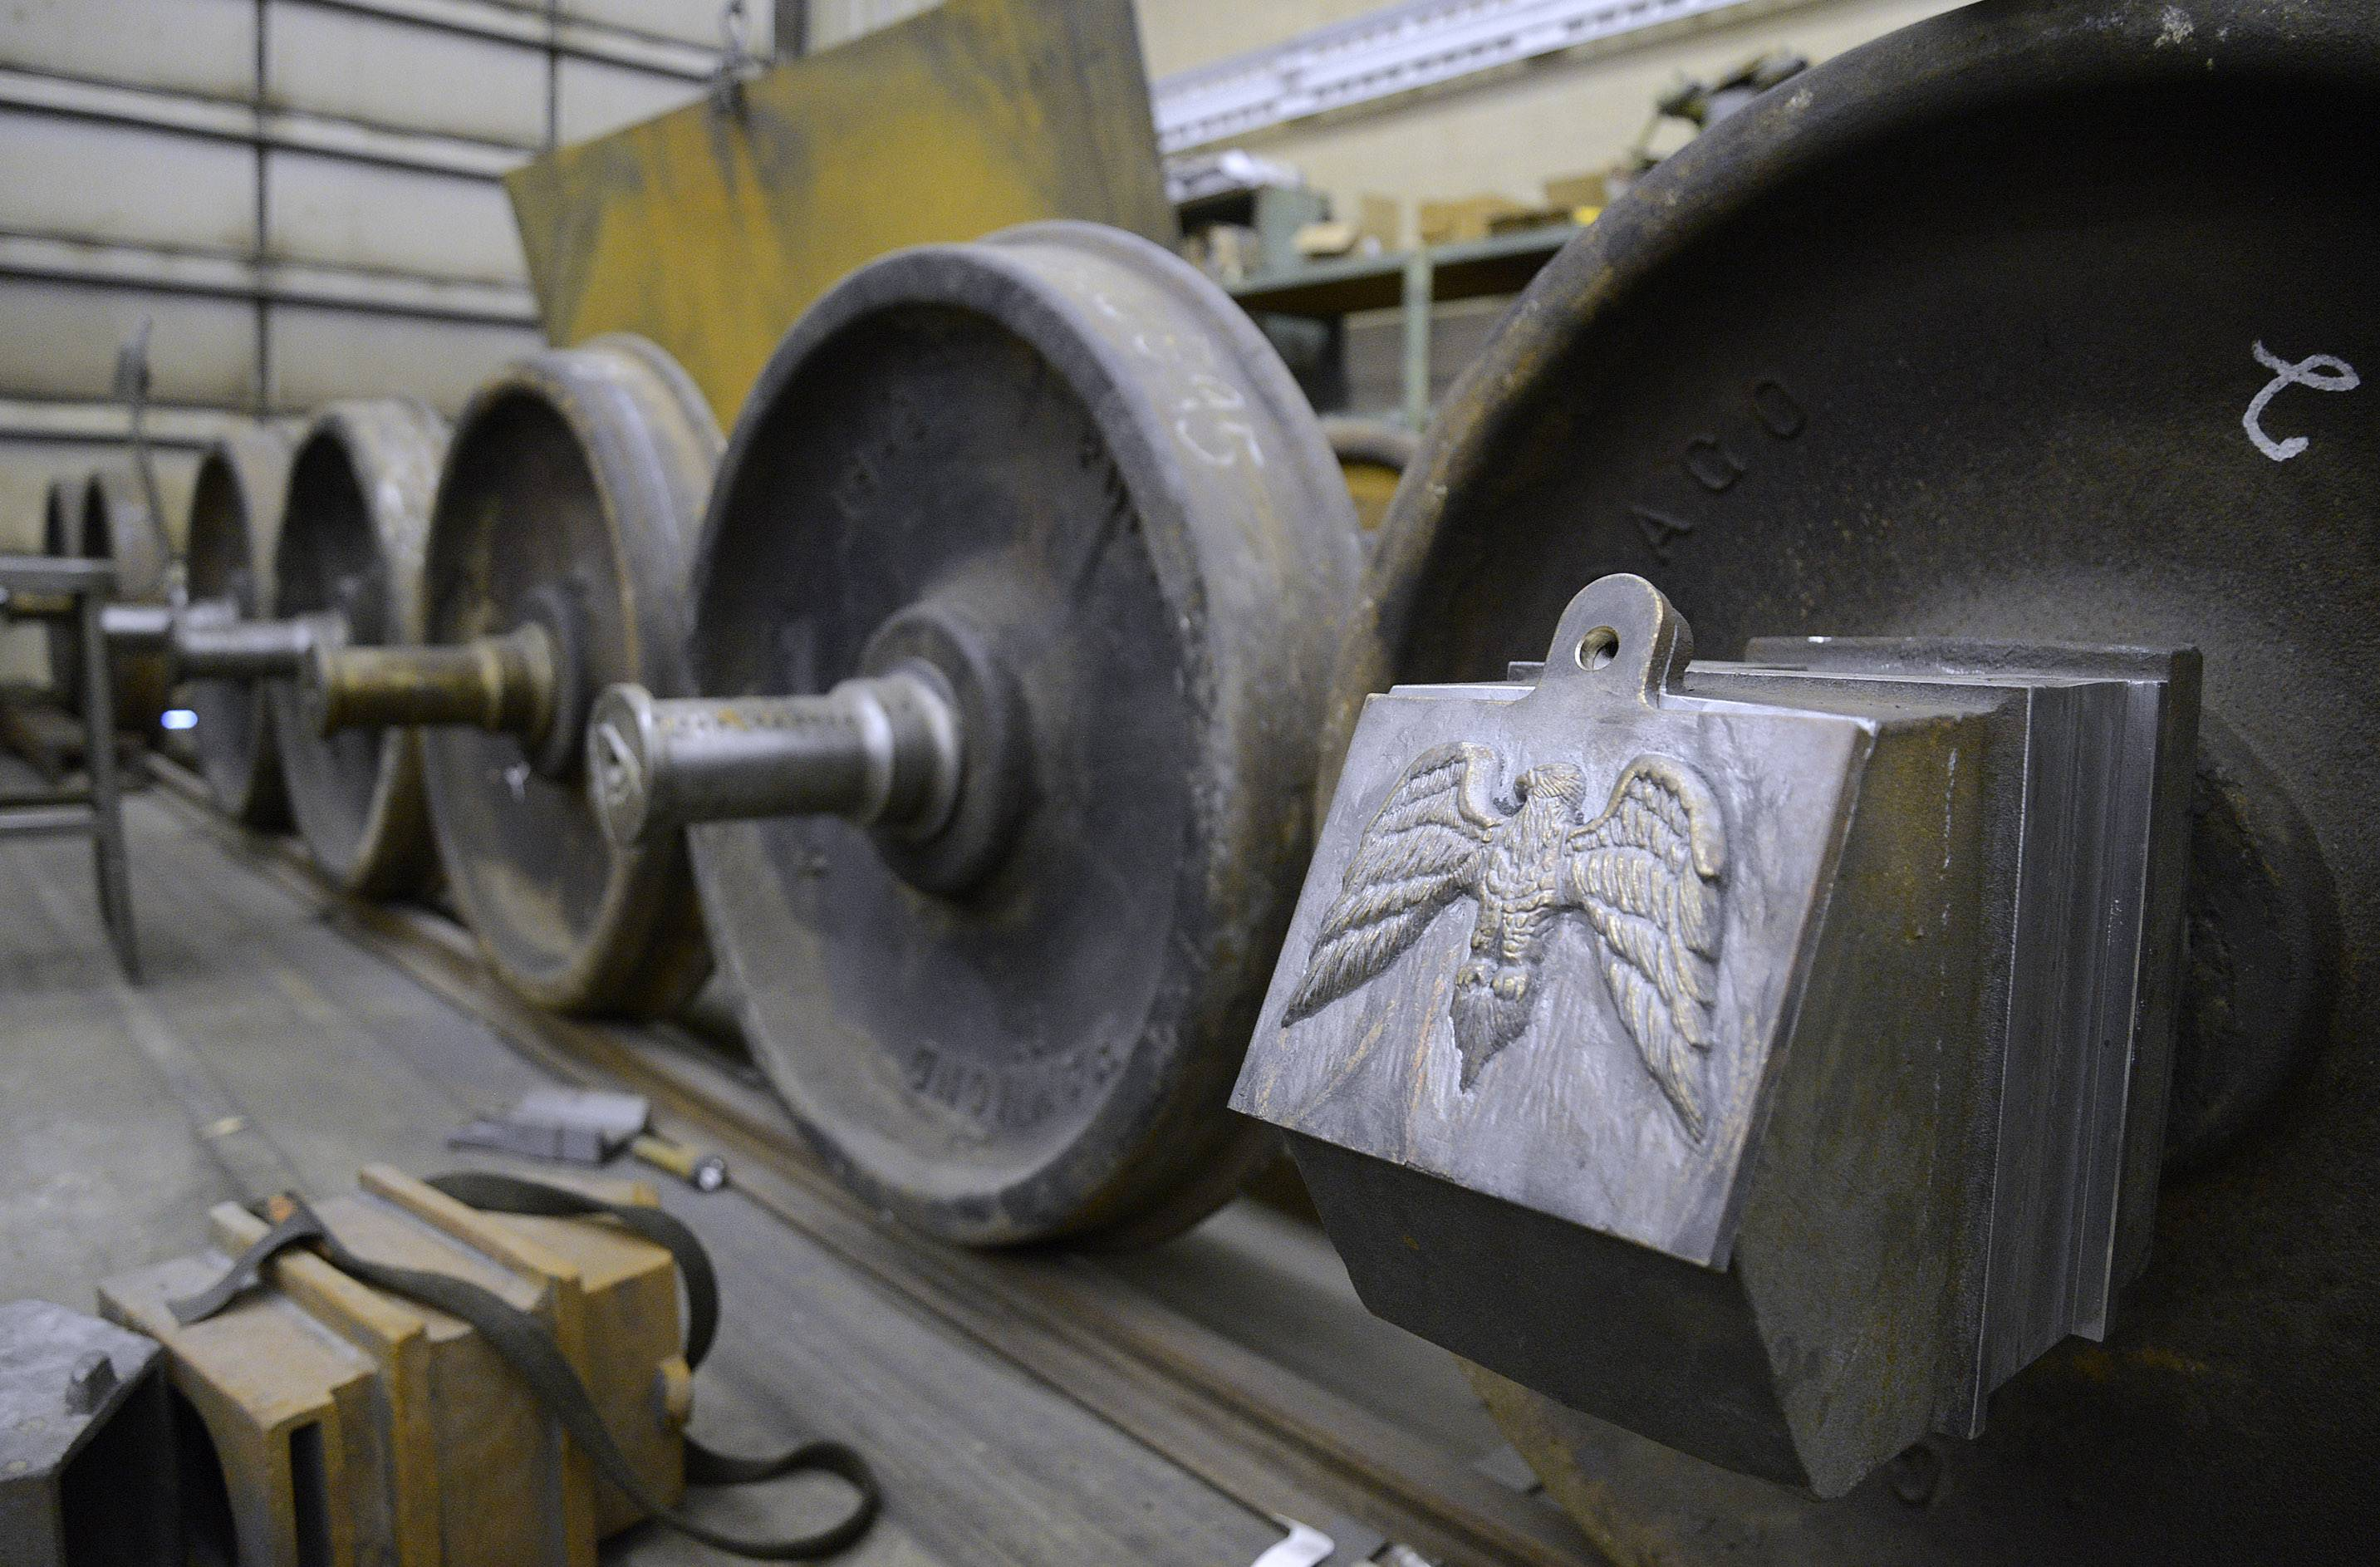 Wheel sets for a replica of Abraham Lincoln's funeral car sit in David H. Kloke's shop in Elgin. Custom made hot boxes, with a hand-designed eagle carving lid cast into metal, will cover each wheel.